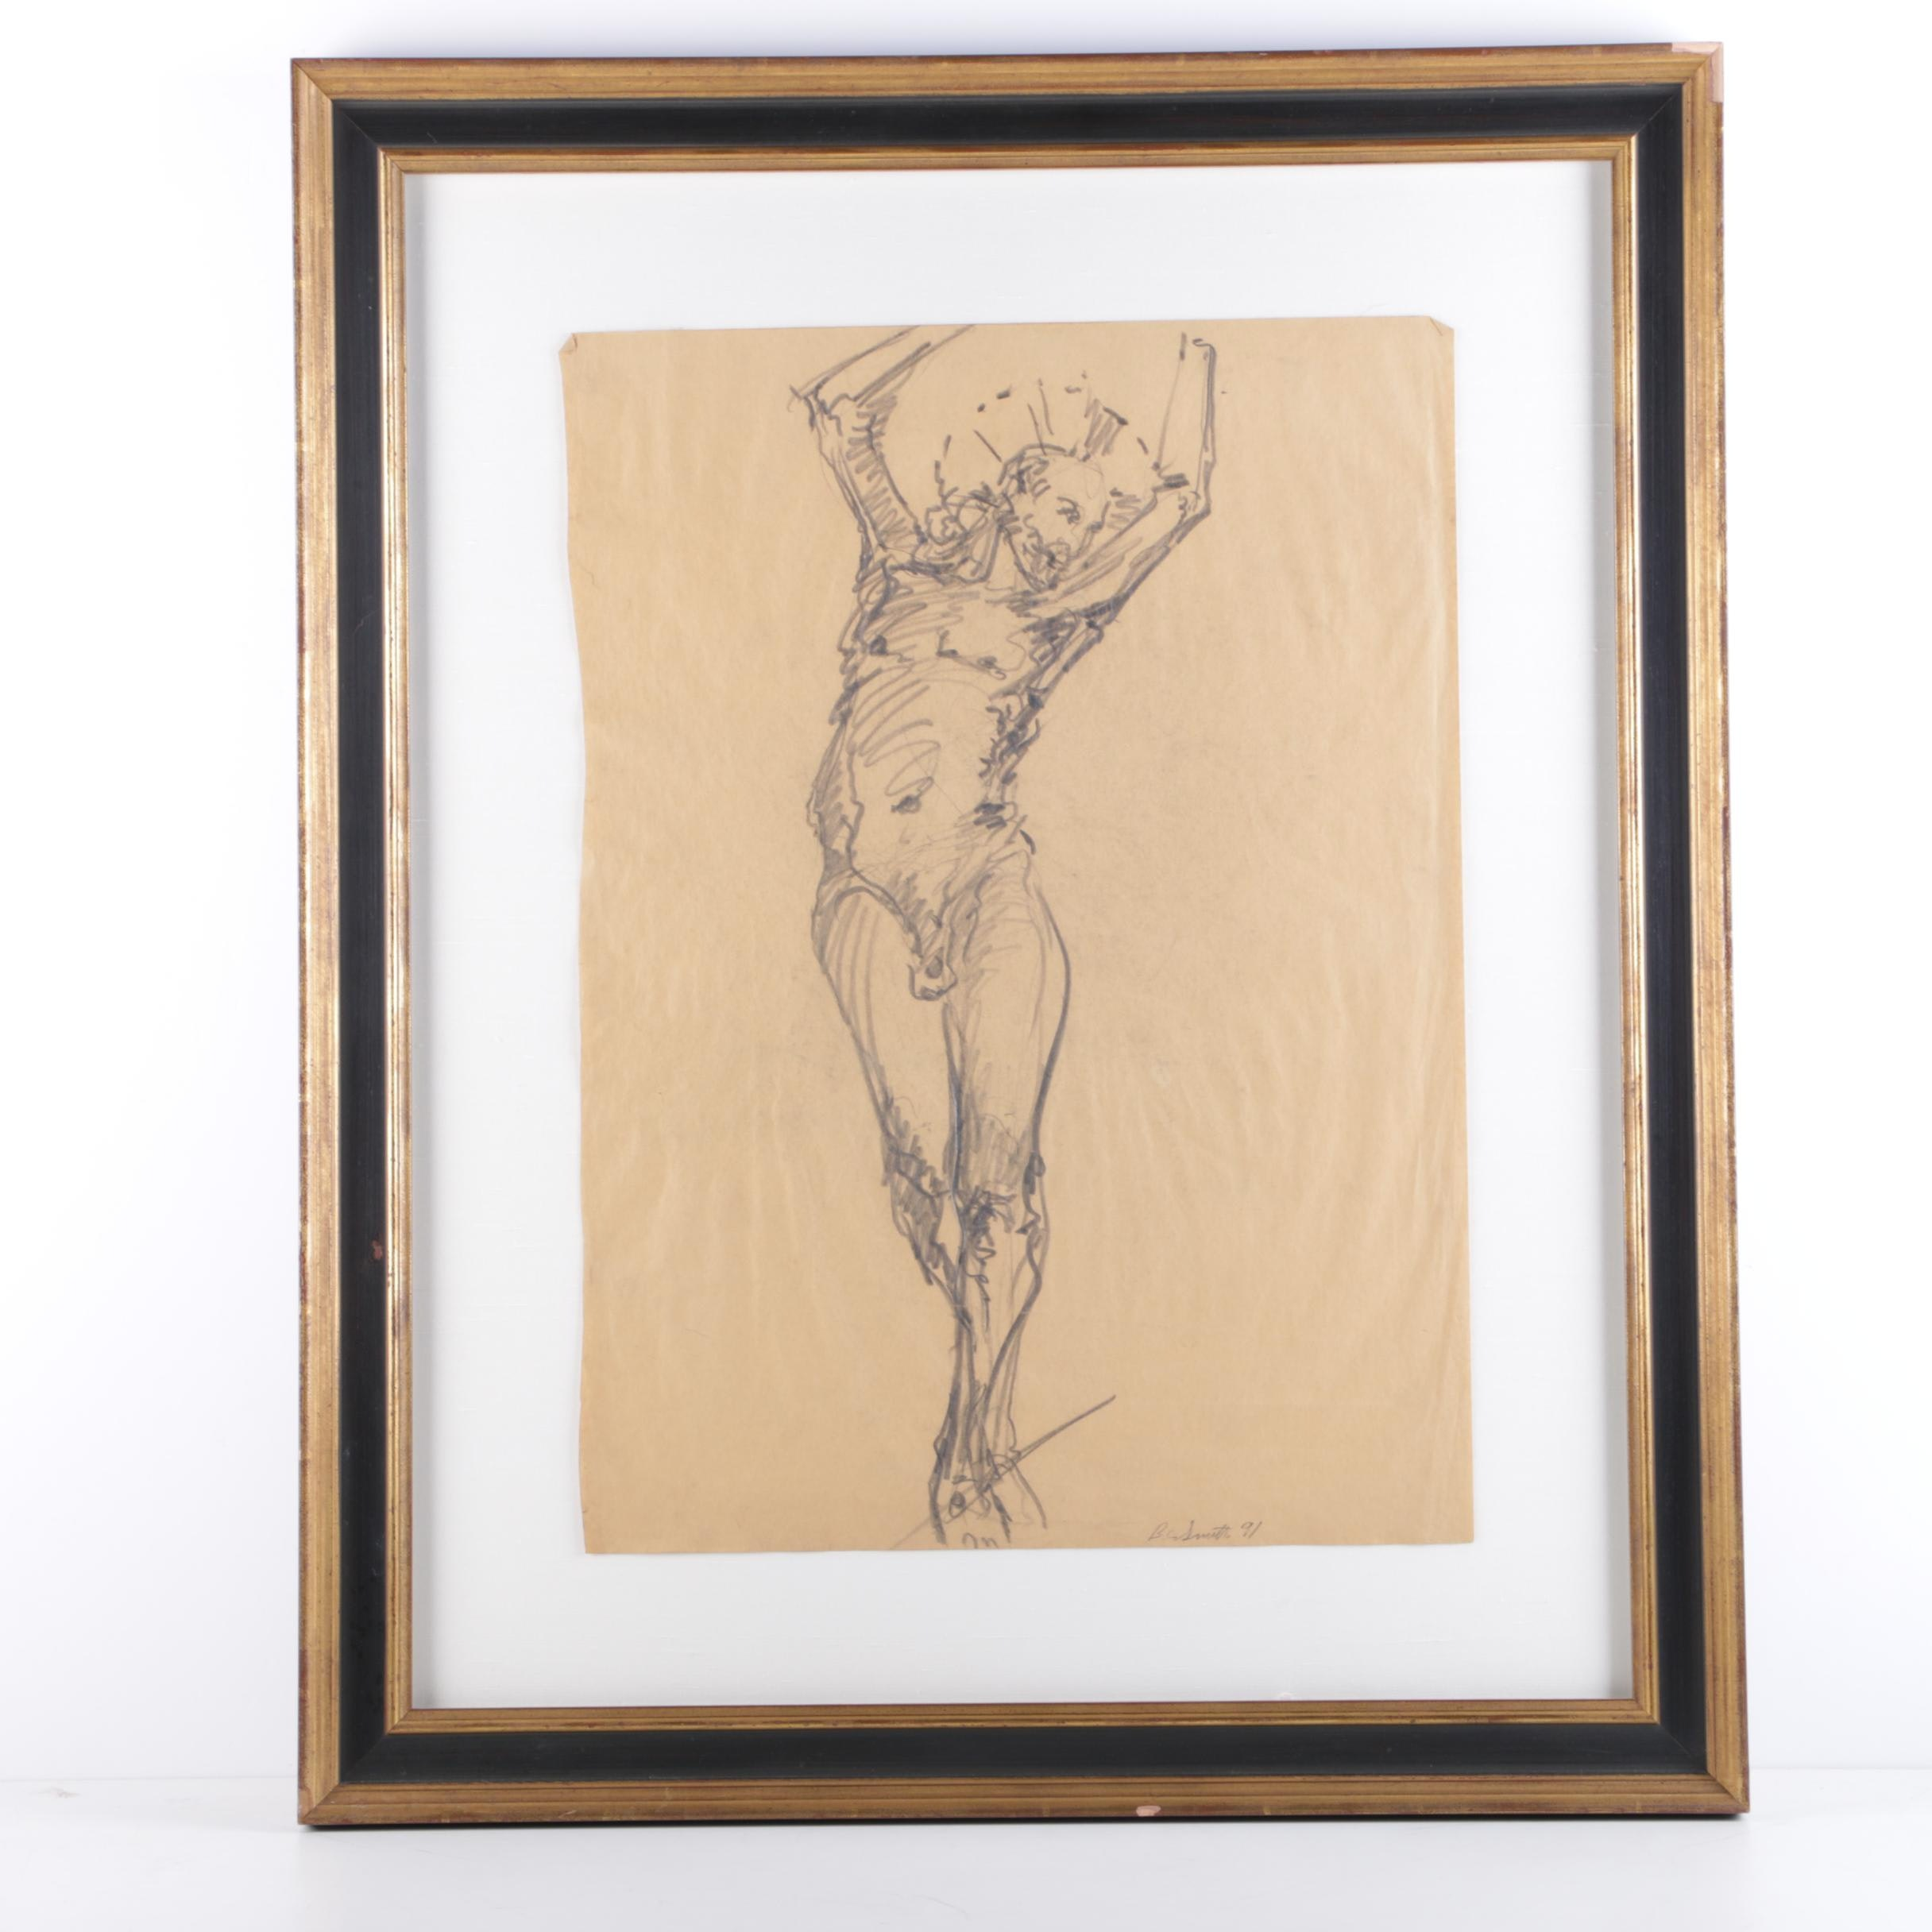 Ben Smith Signed Drawing of the Crucifixion